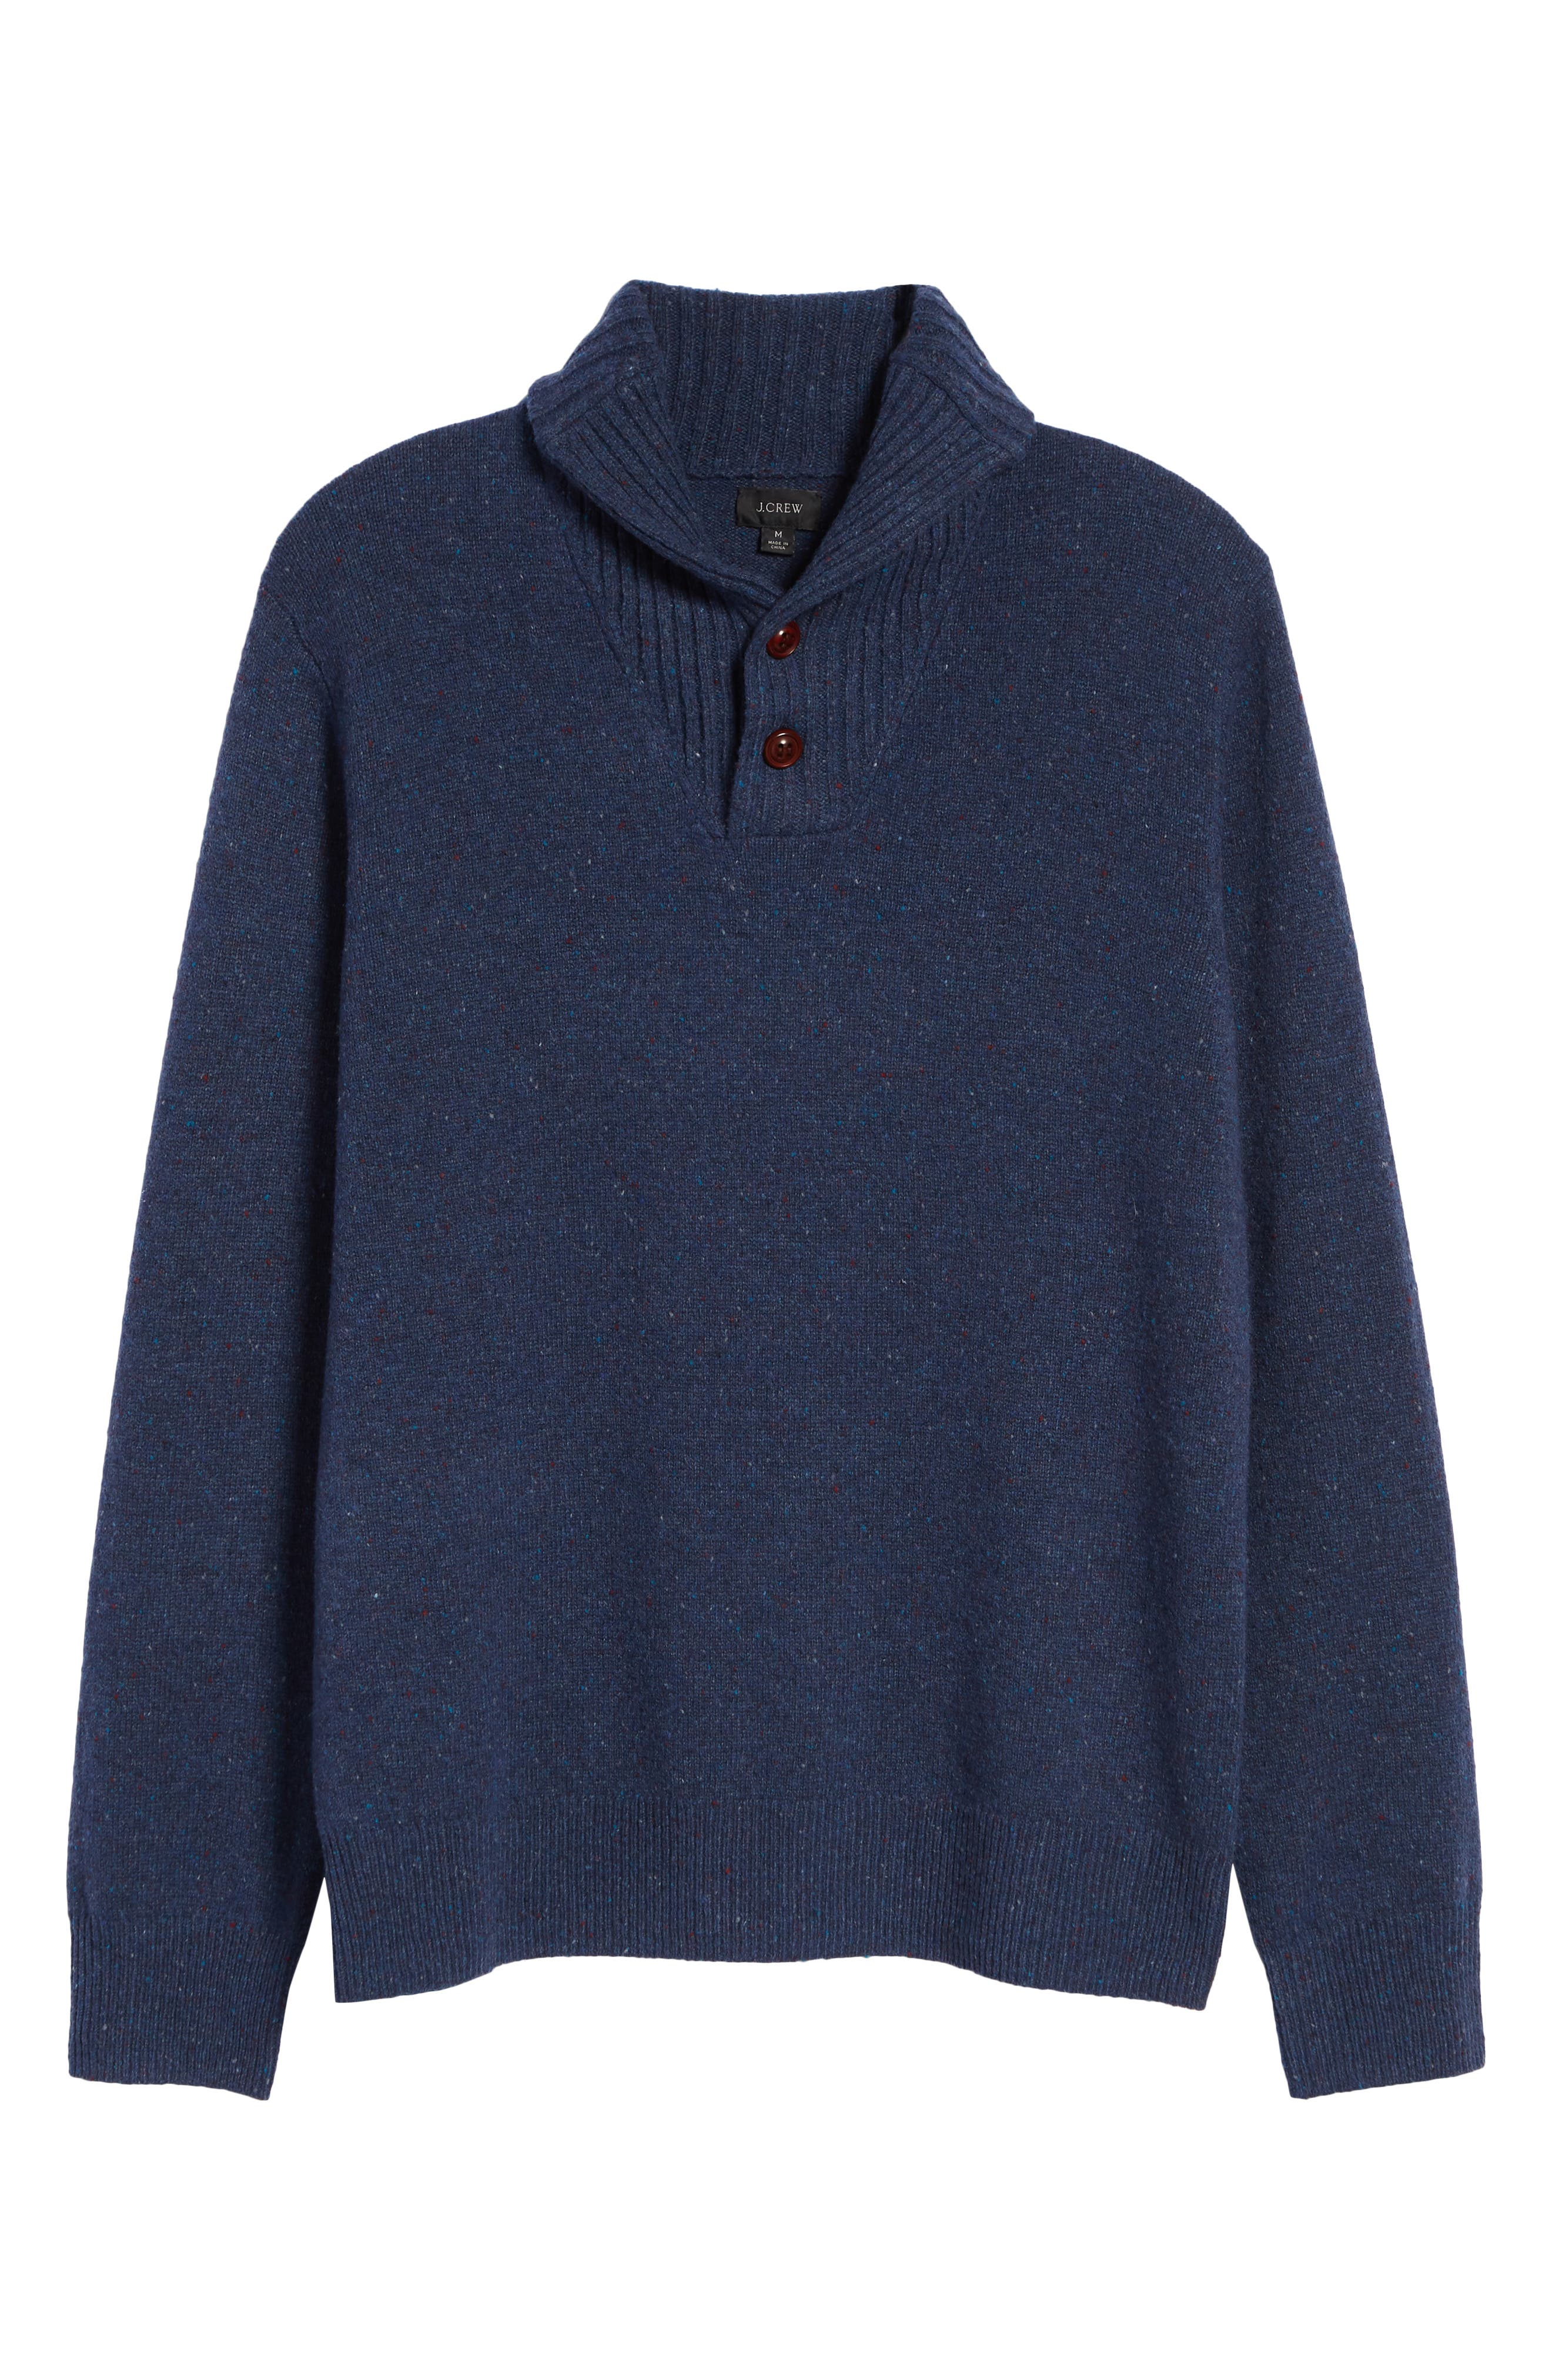 Rugged Merino Wool Blend Shawl Collar Pullover Sweater,                             Alternate thumbnail 6, color,                             NAVY DONEGAL